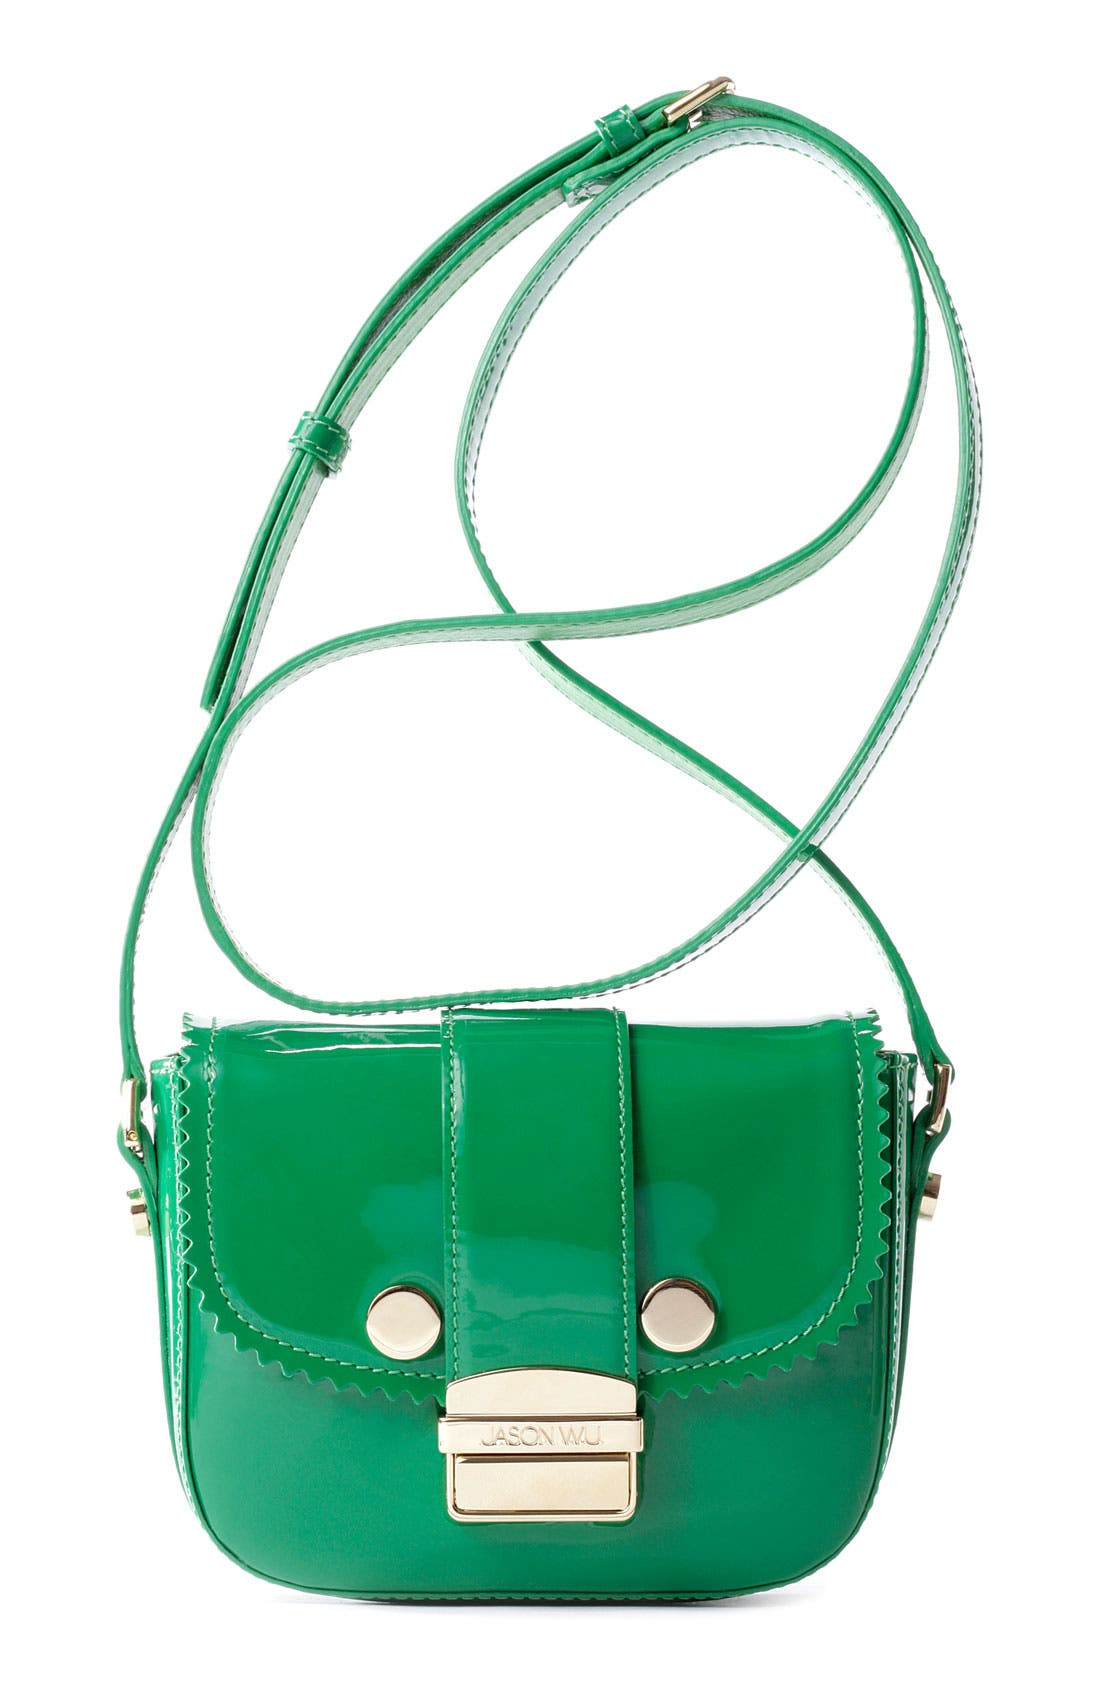 Alternate Image 1 Selected - Jason Wu 'Mini Miss Wu' Patent Leather Crossbody Bag